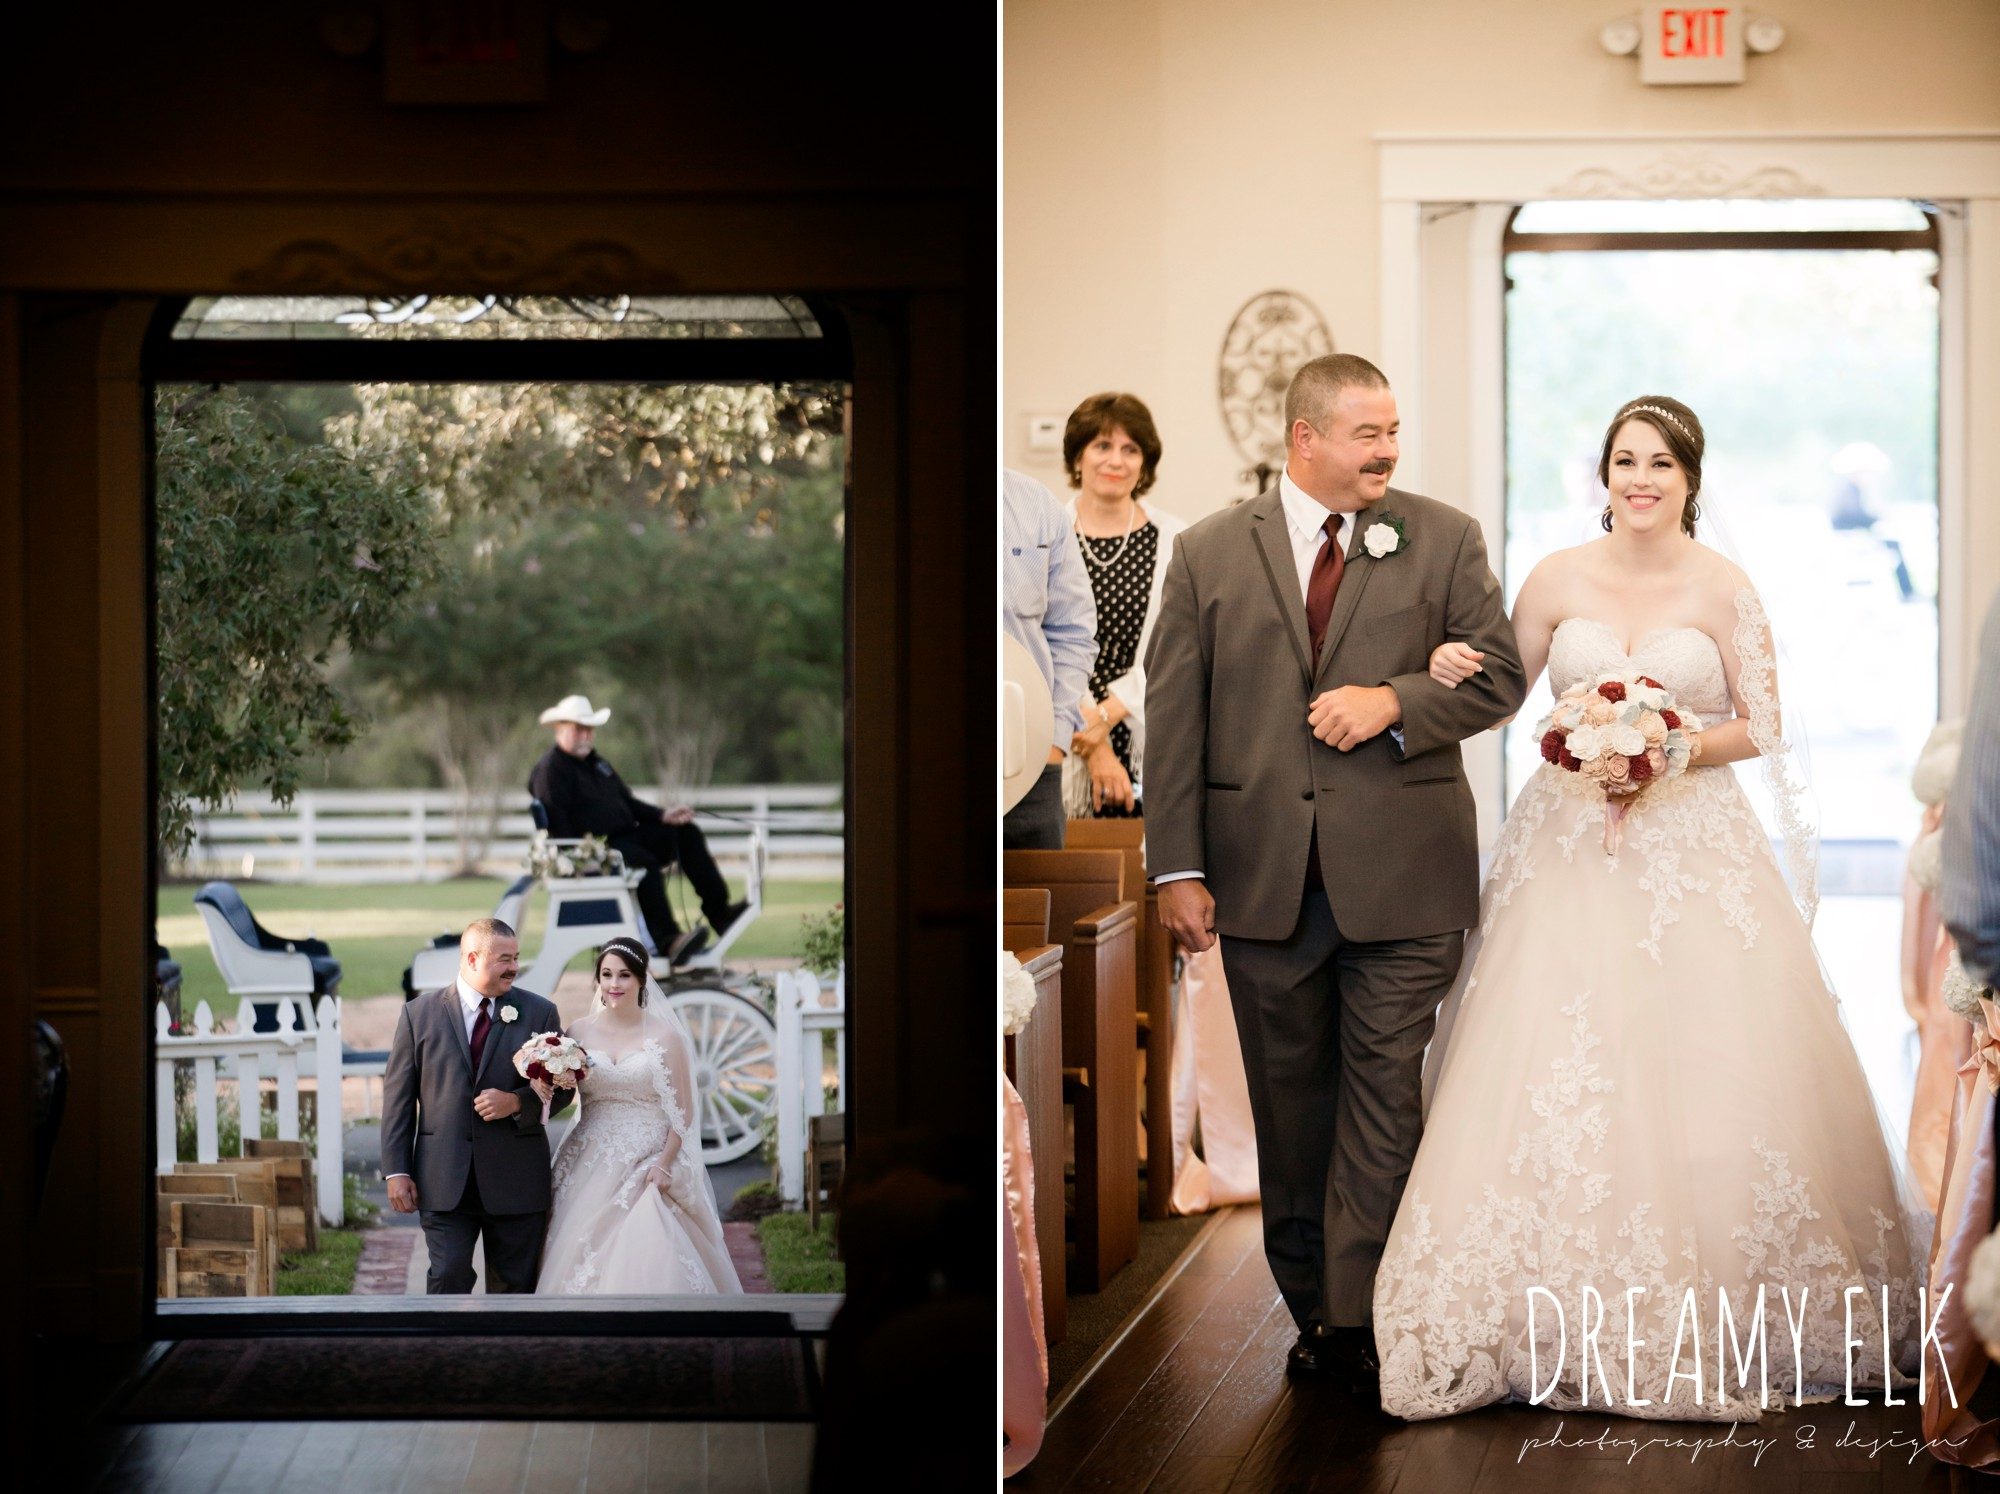 wedding ceremony, bride and dad walking down the aisle, bride, sweetheart lace ballgown wedding dress, oyester underlay, lace trimmed veil, rhinestone headpiece, september wedding photo, ashelynn manor, magnolia, texas, austin texas wedding photographer {dreamy elk photography and design}